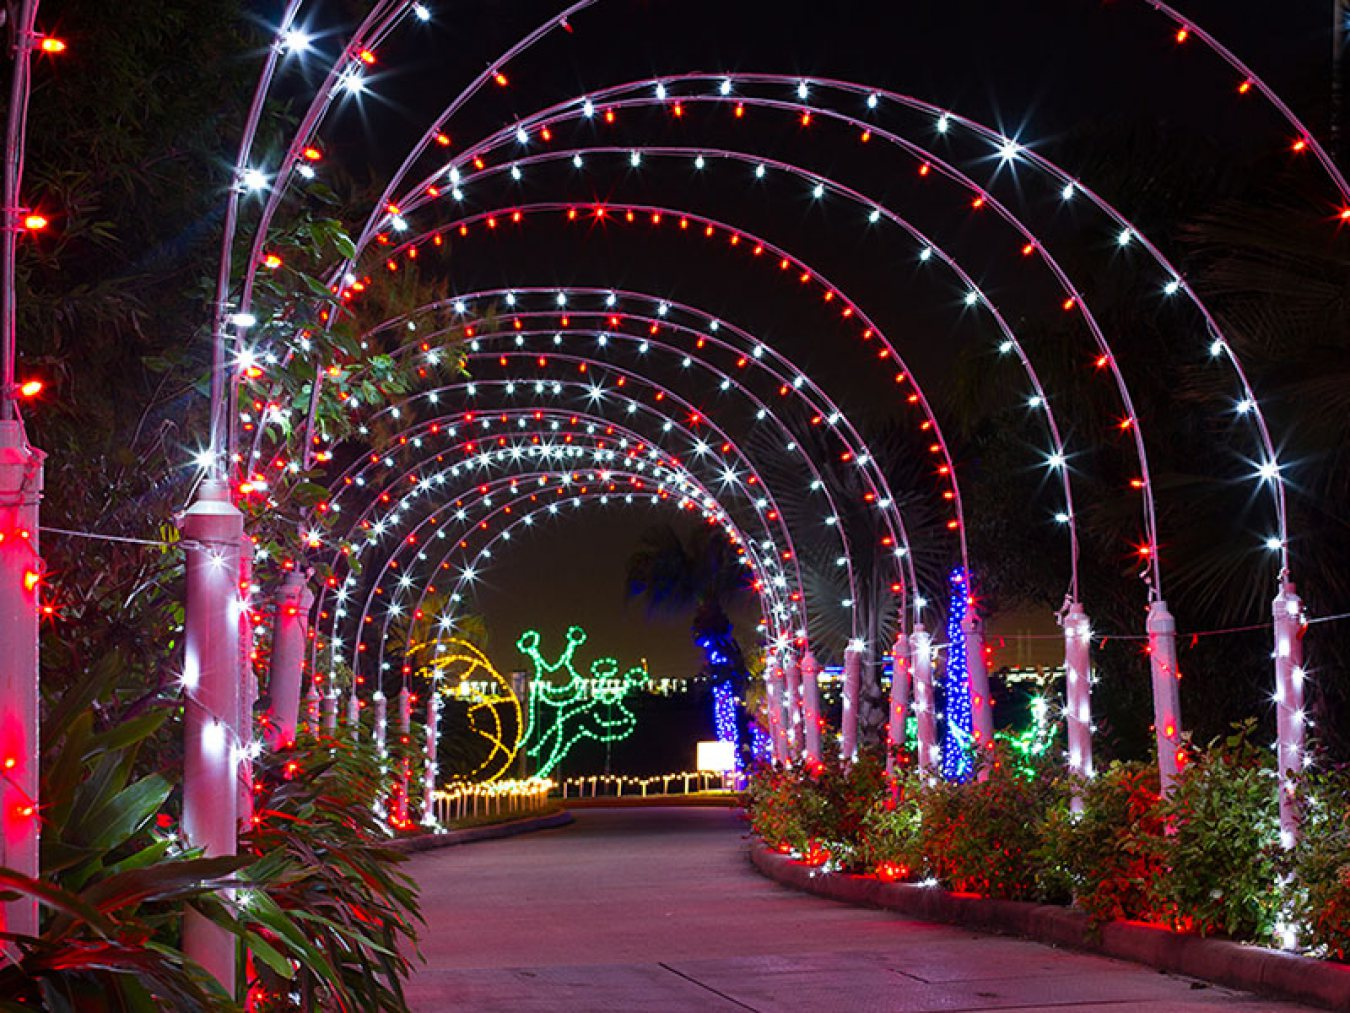 Festival of Lights Tunnel